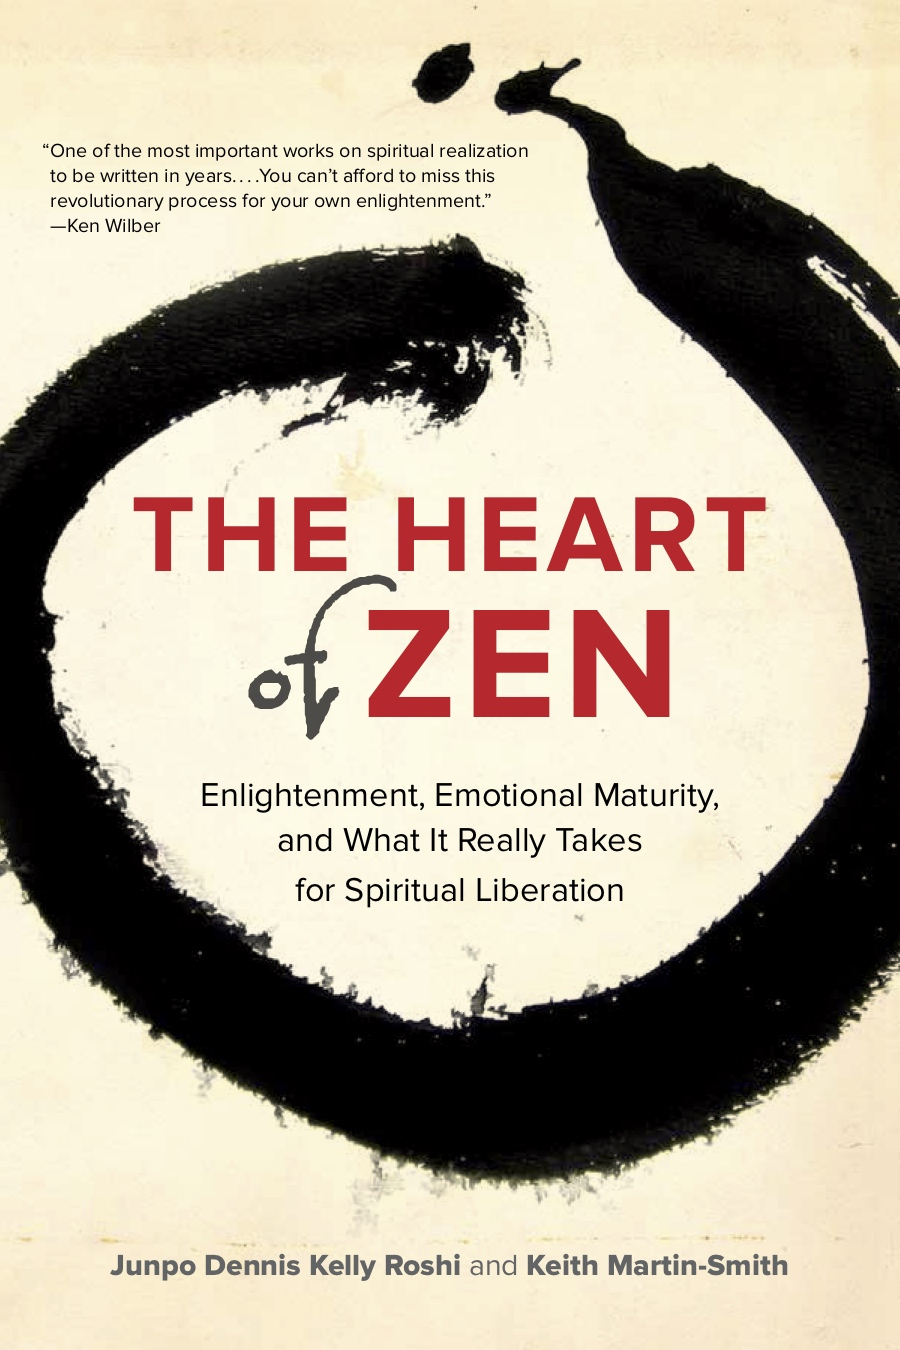 """One of the most important works on spiritual realization to be written in years. You really can't afford to miss this revolutionary process for your own Enlightenment."" -  Ken Wilber , on The Heart of Zen"